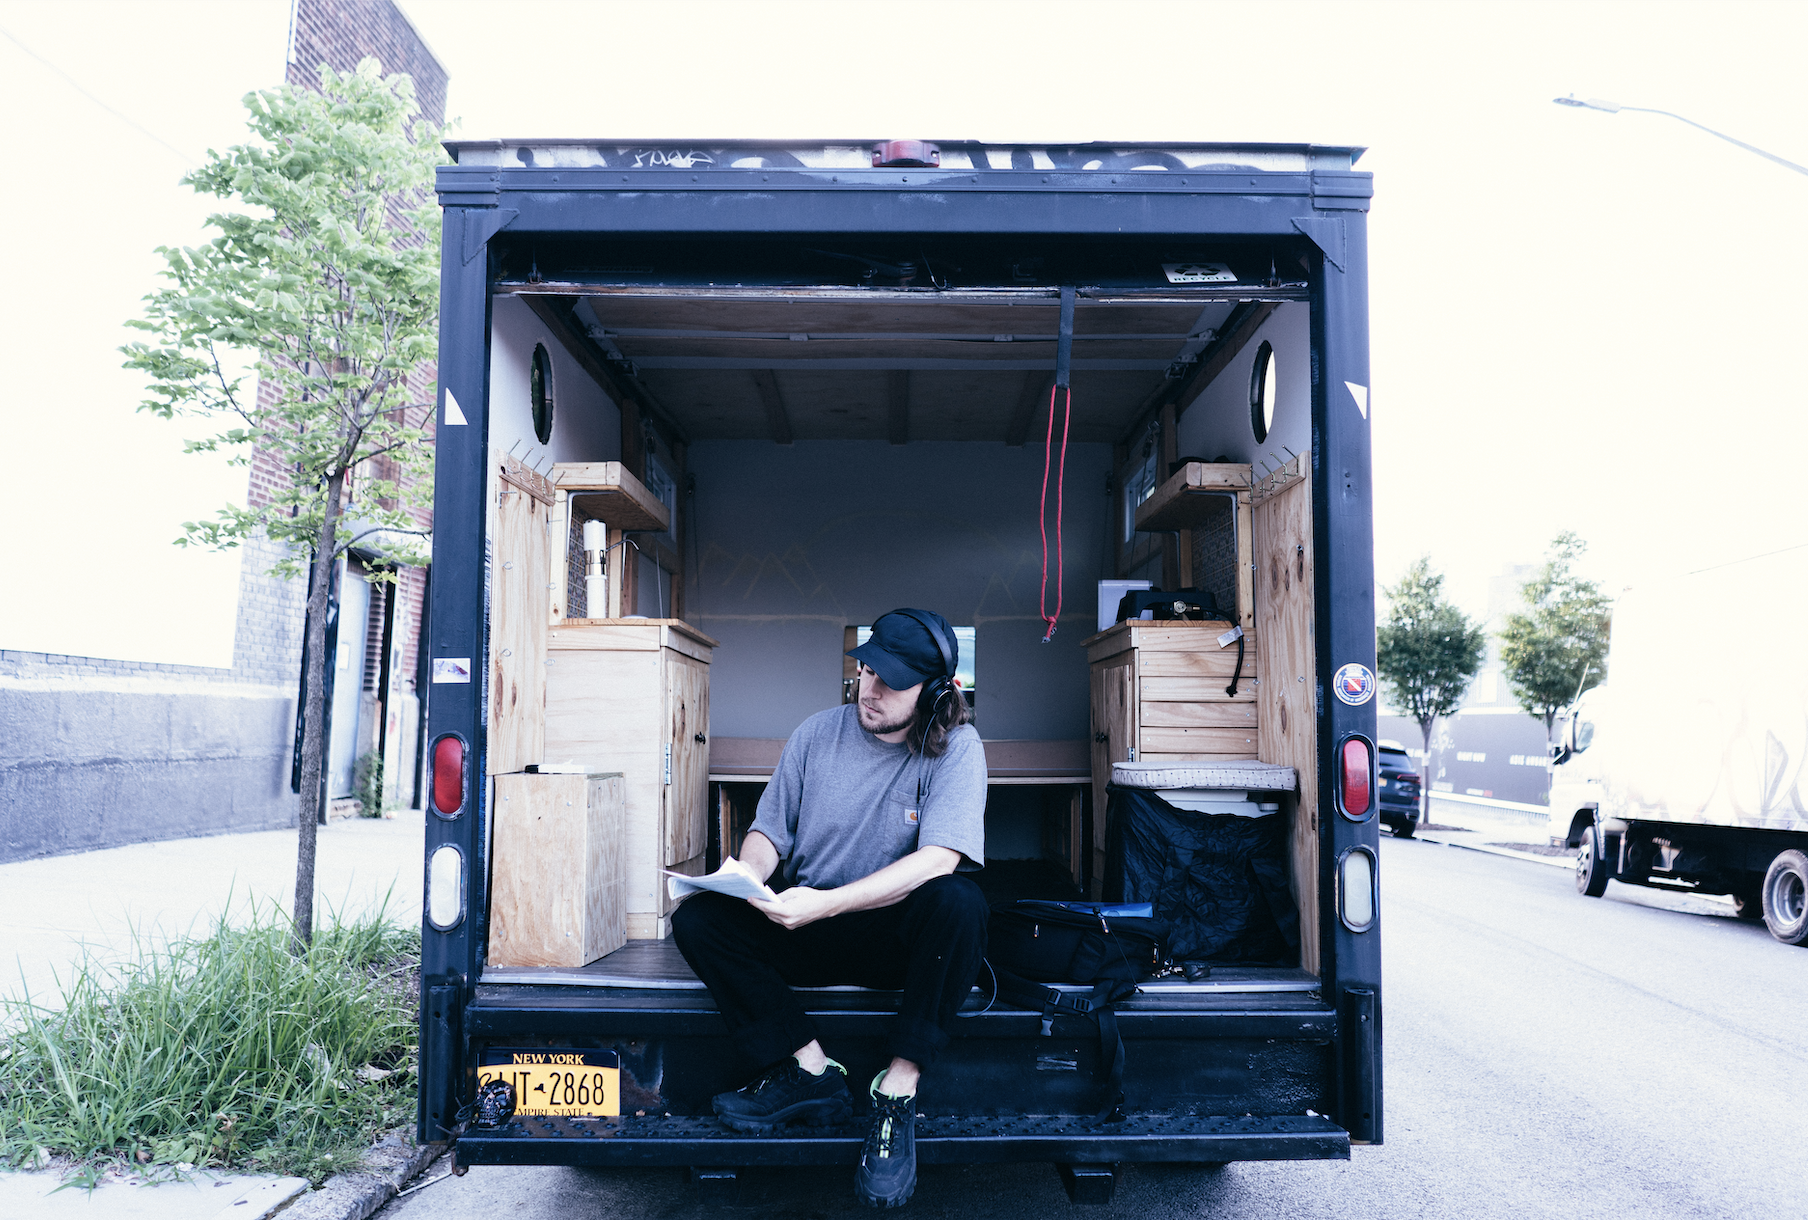 Copywriter Drew Botcherby, getting some work done in his recently purchased conversion van.